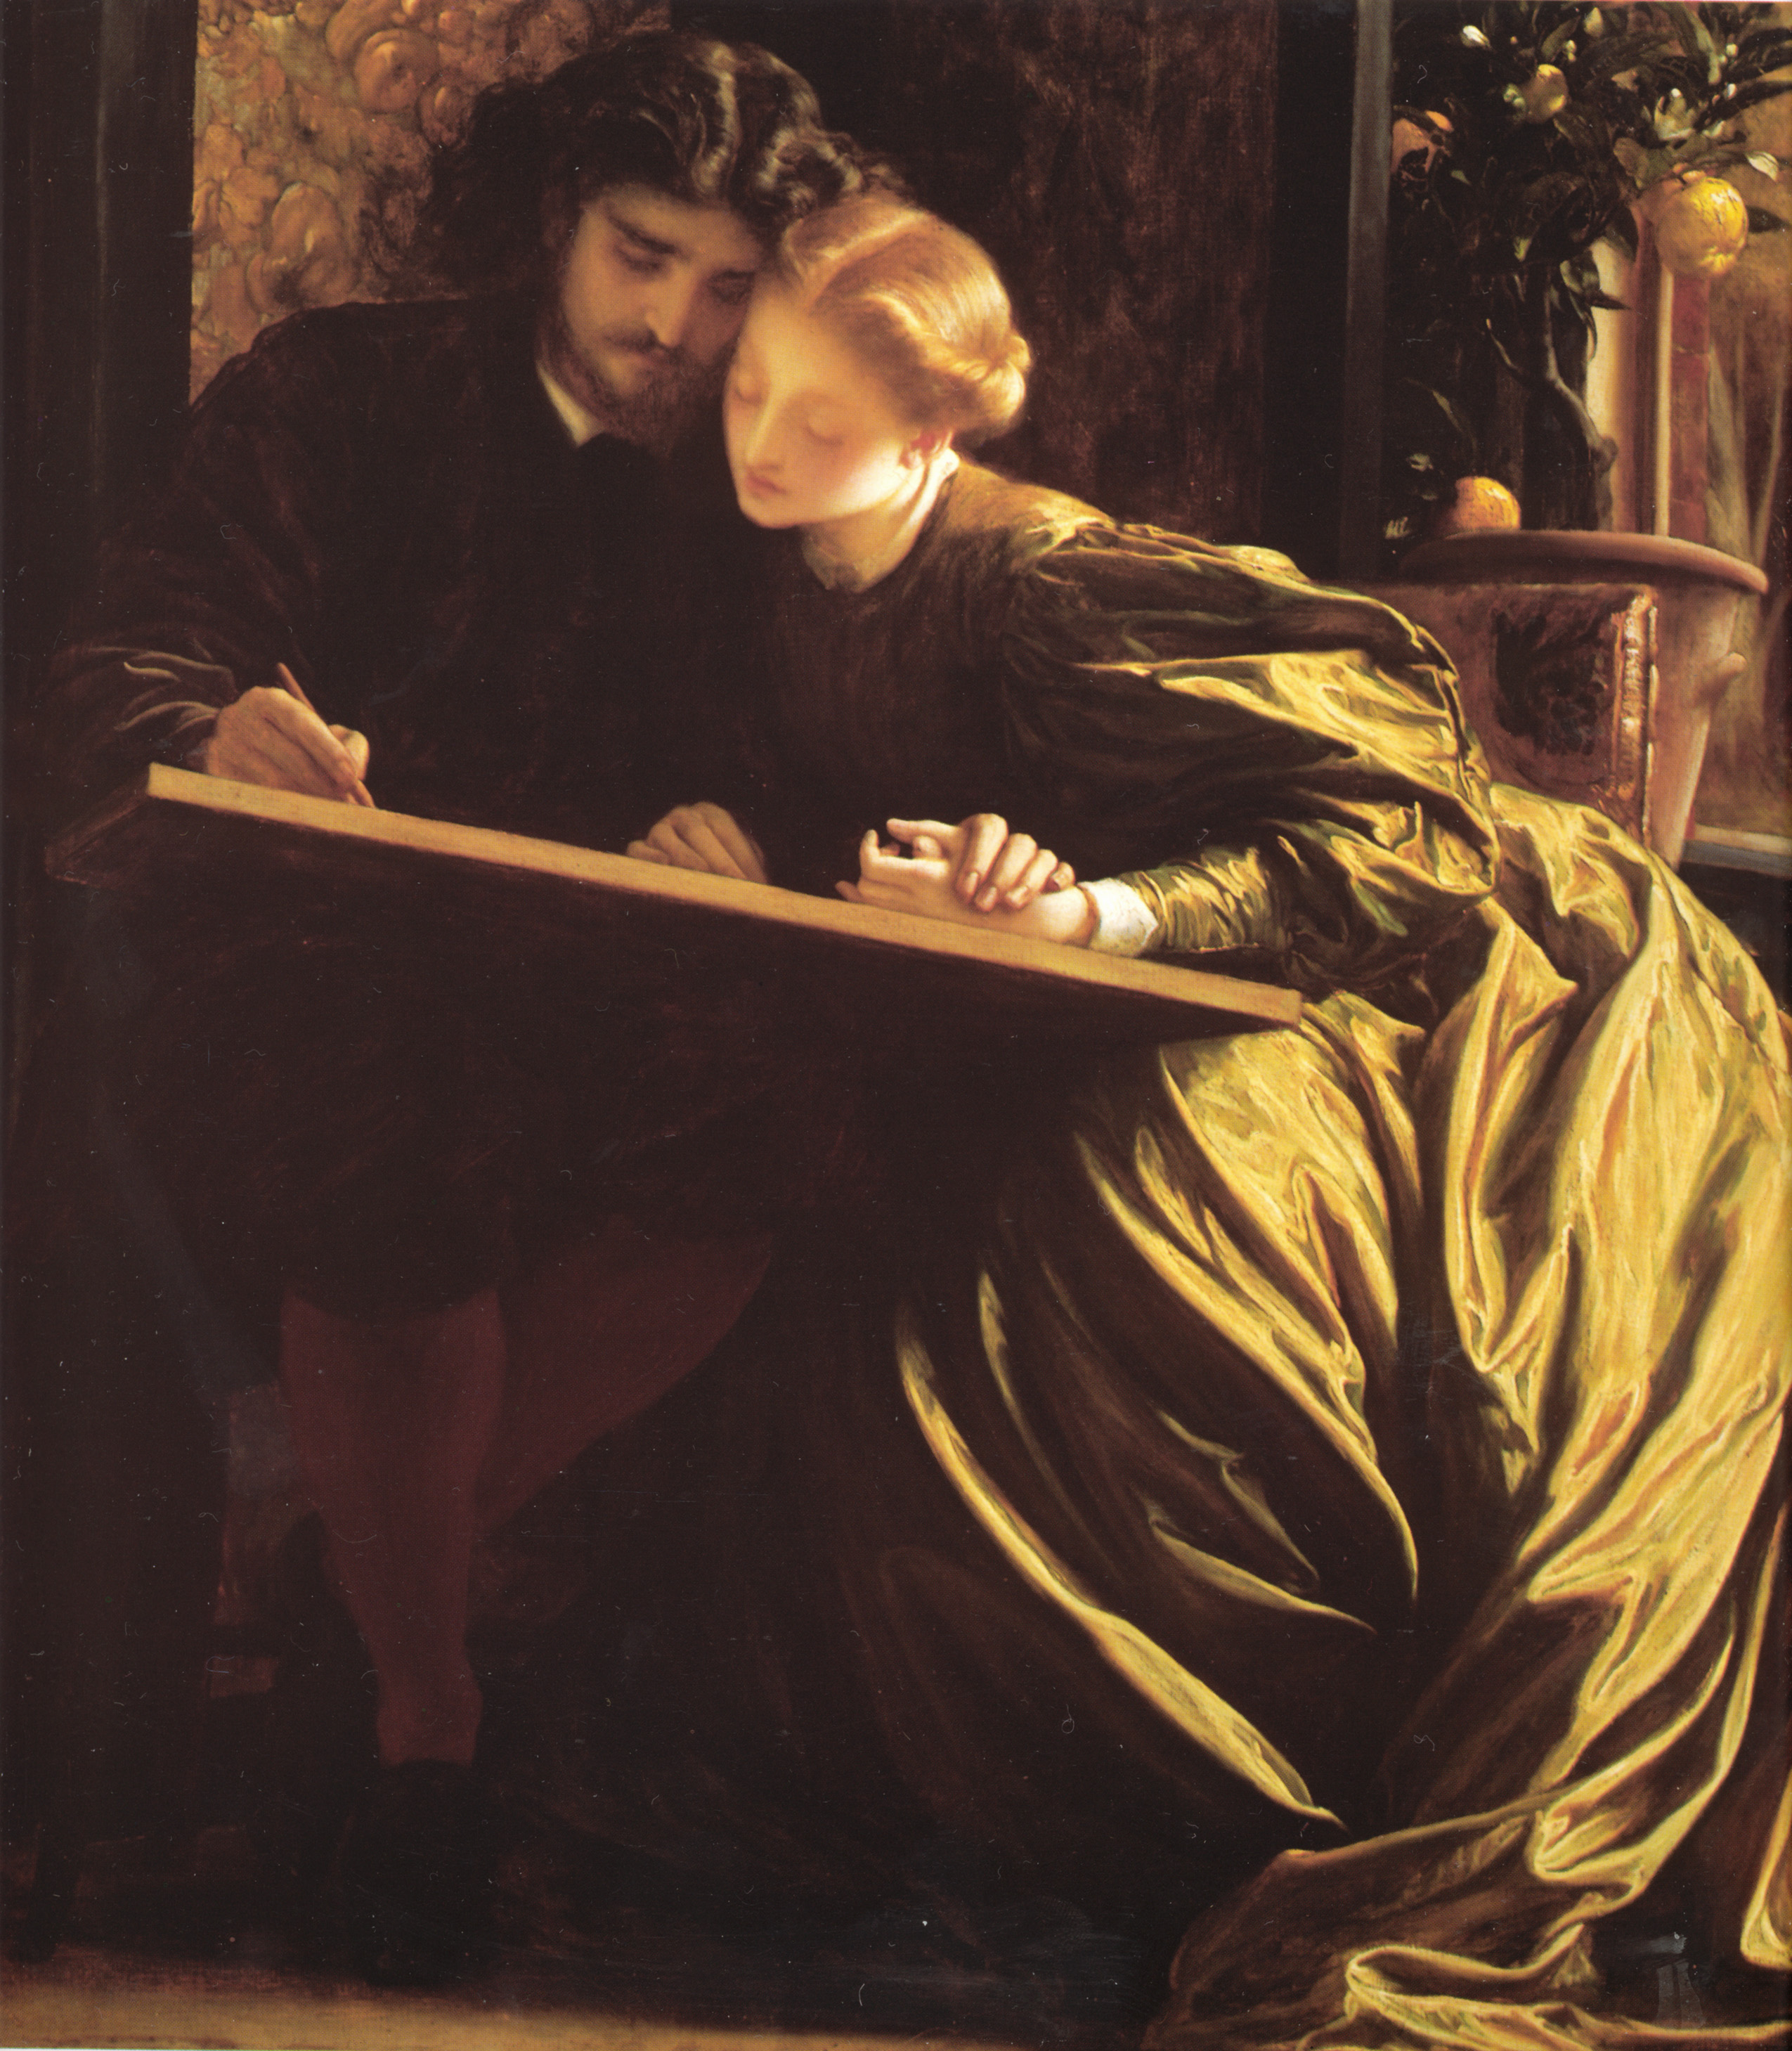 The Painter's Honeymoon by Frederic Leighton, circa 1864